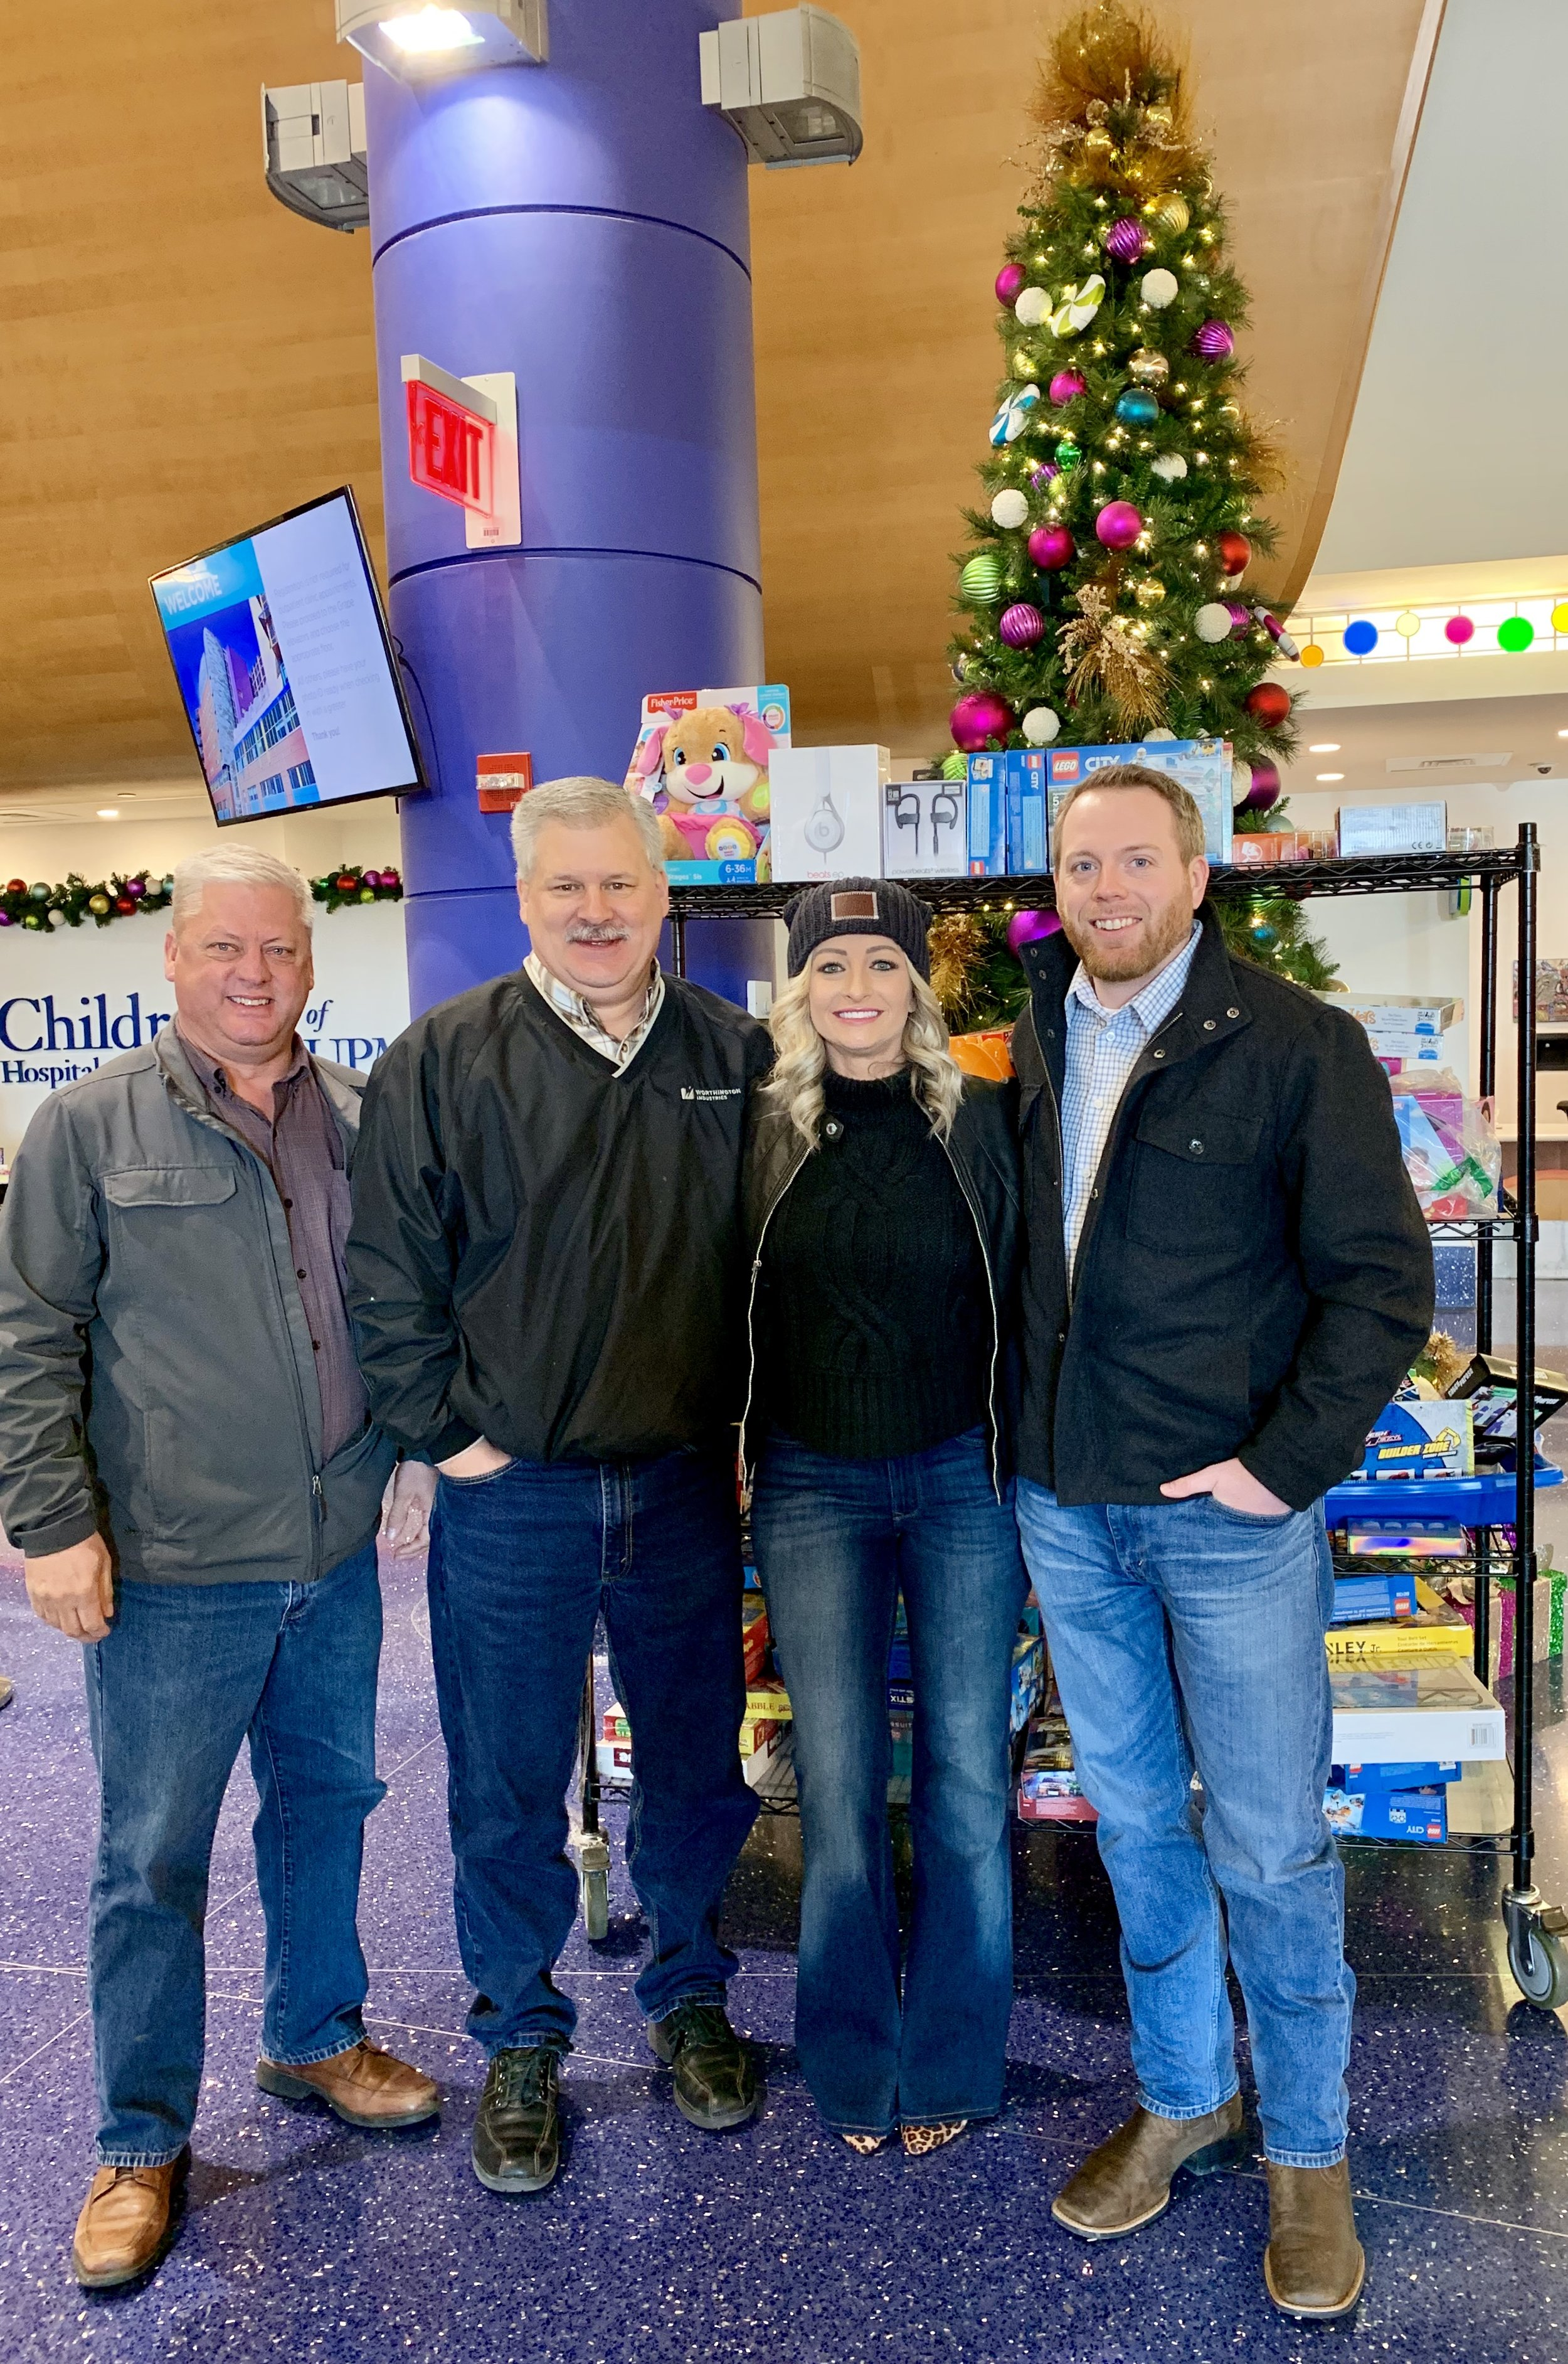 MUG Board Members Walt Elmquist, Todd Householder, Crystal Miller, and Chris LaBarte dropped off toy donations and $2,500 in proceeds raised from the MUG Holiday Happy Hour.